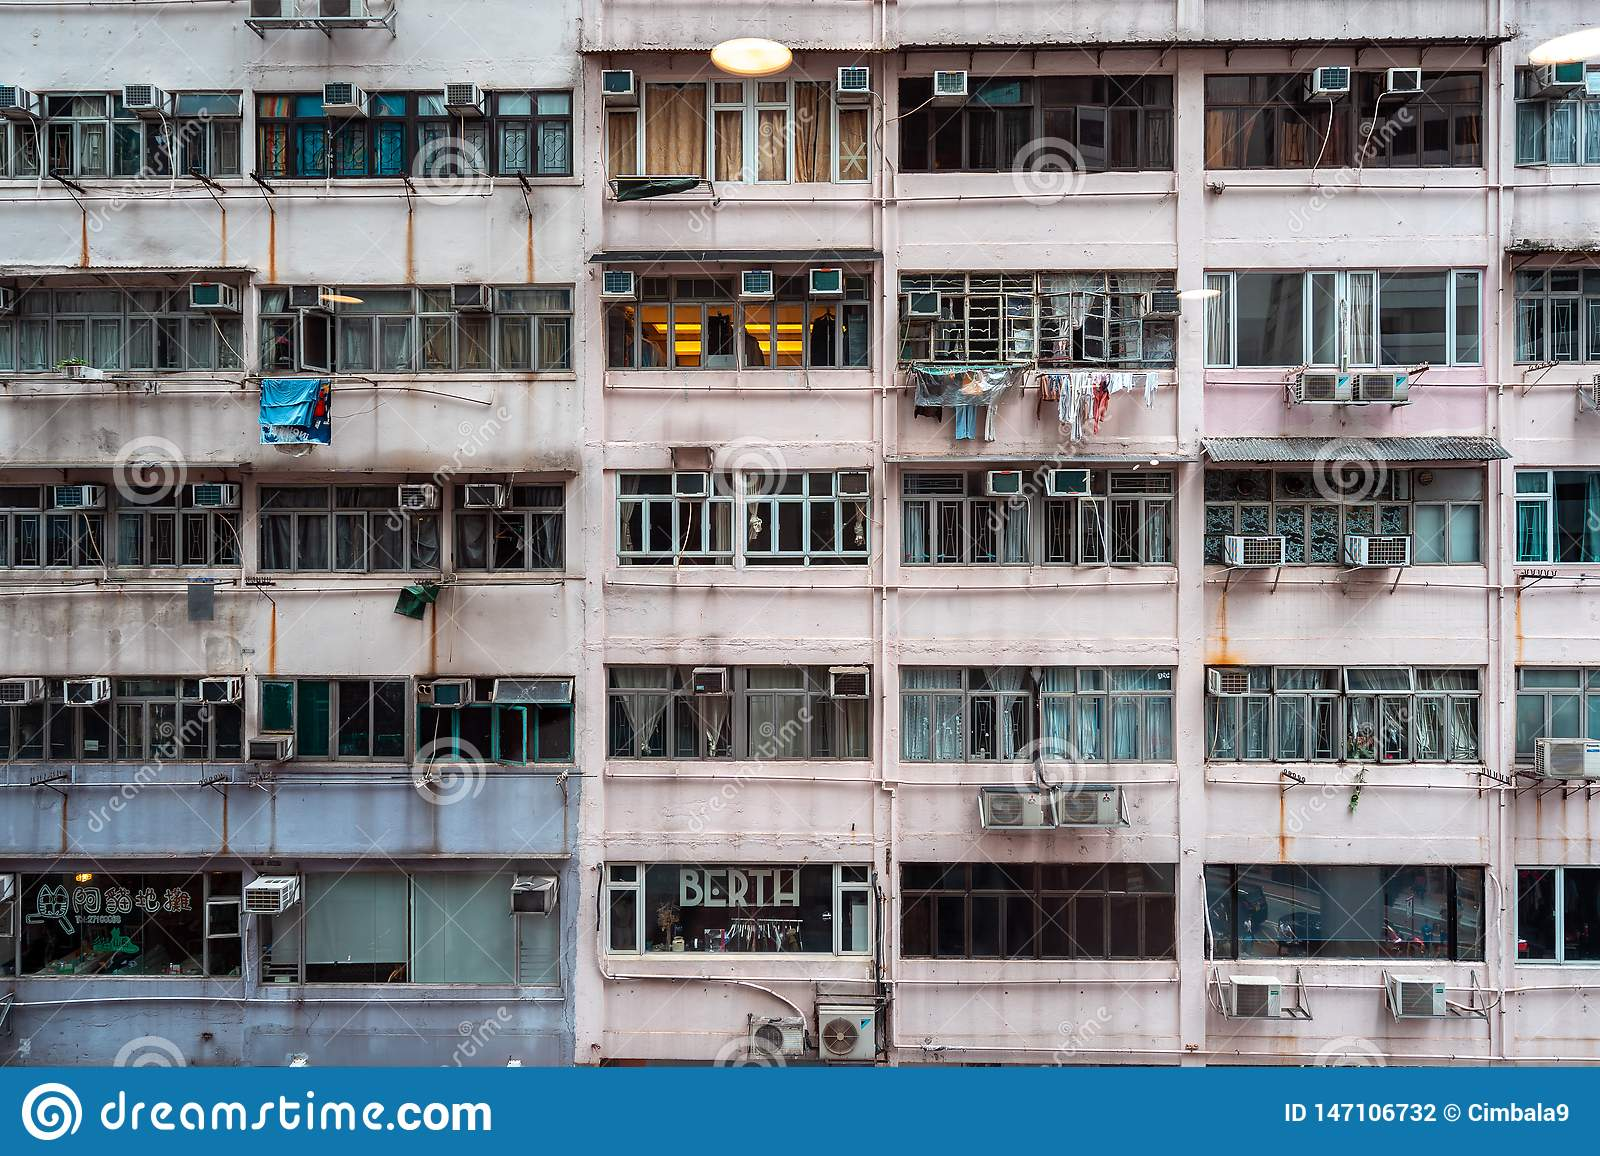 Hong Kong, China - Residential building facade